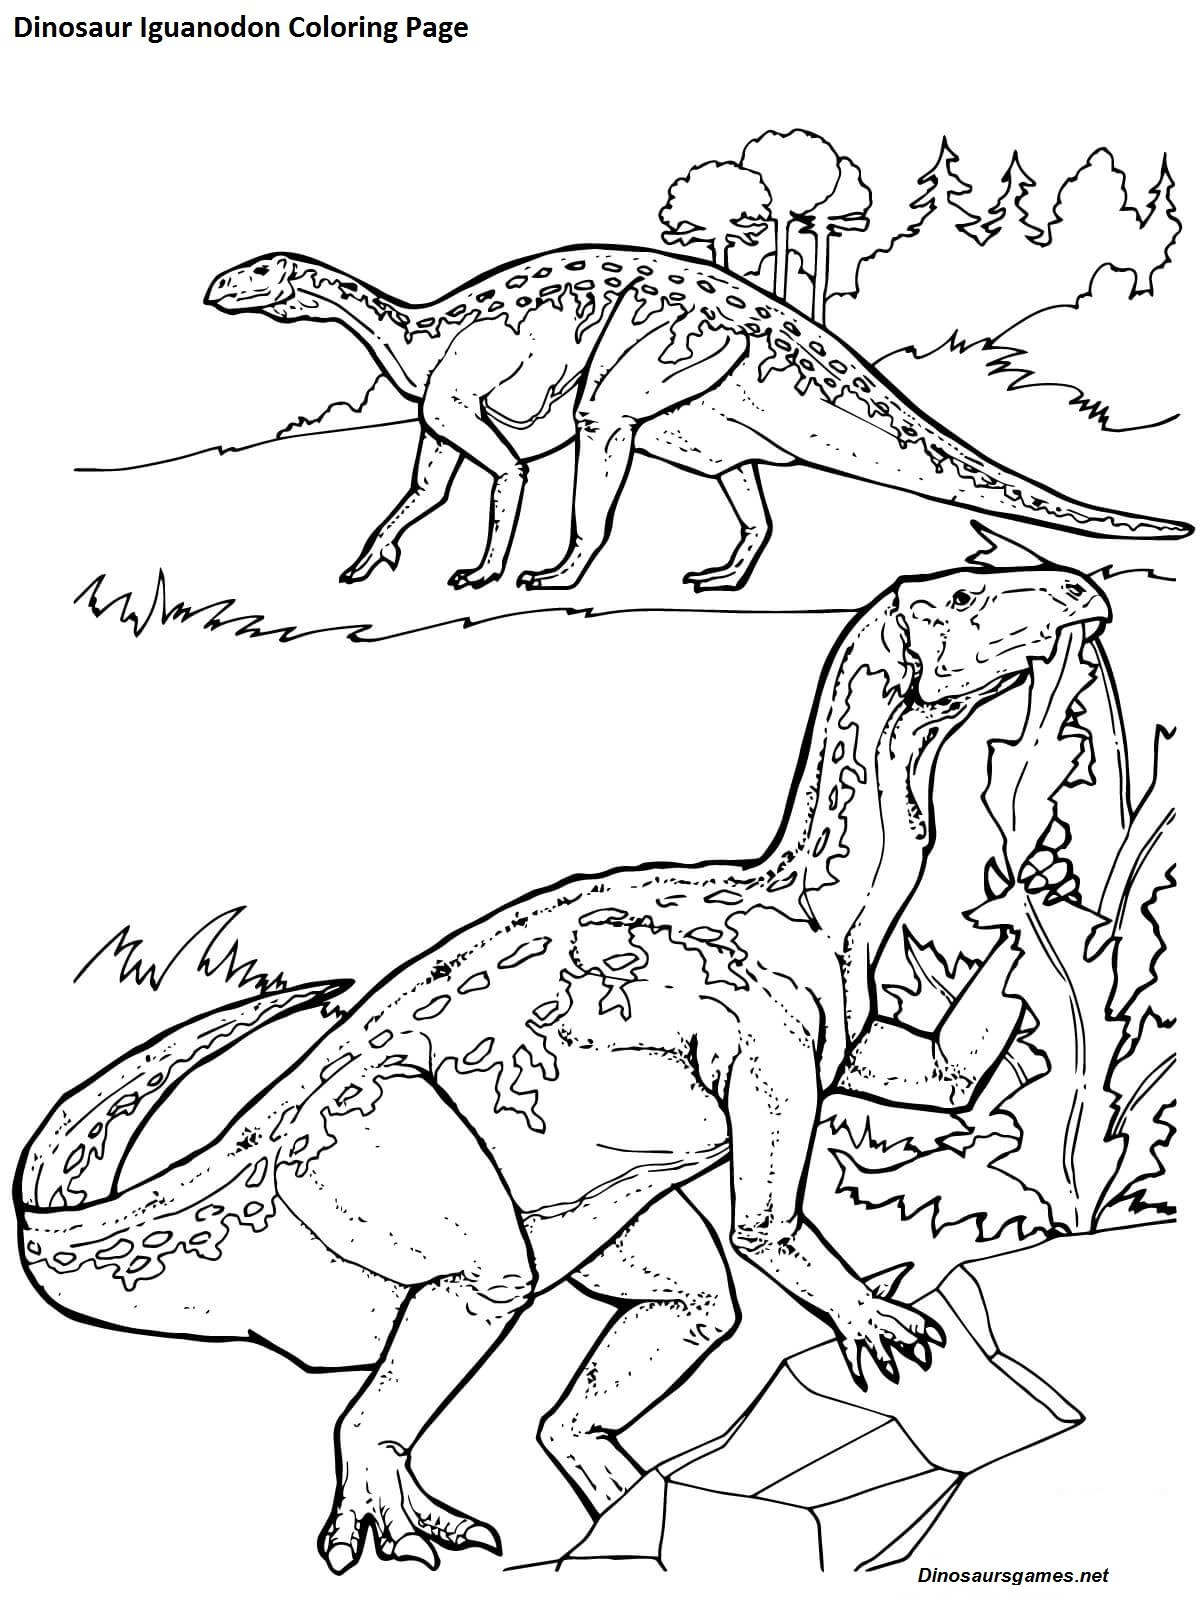 T Rex Coloring Pages – coloring.rocks! | 1600x1200